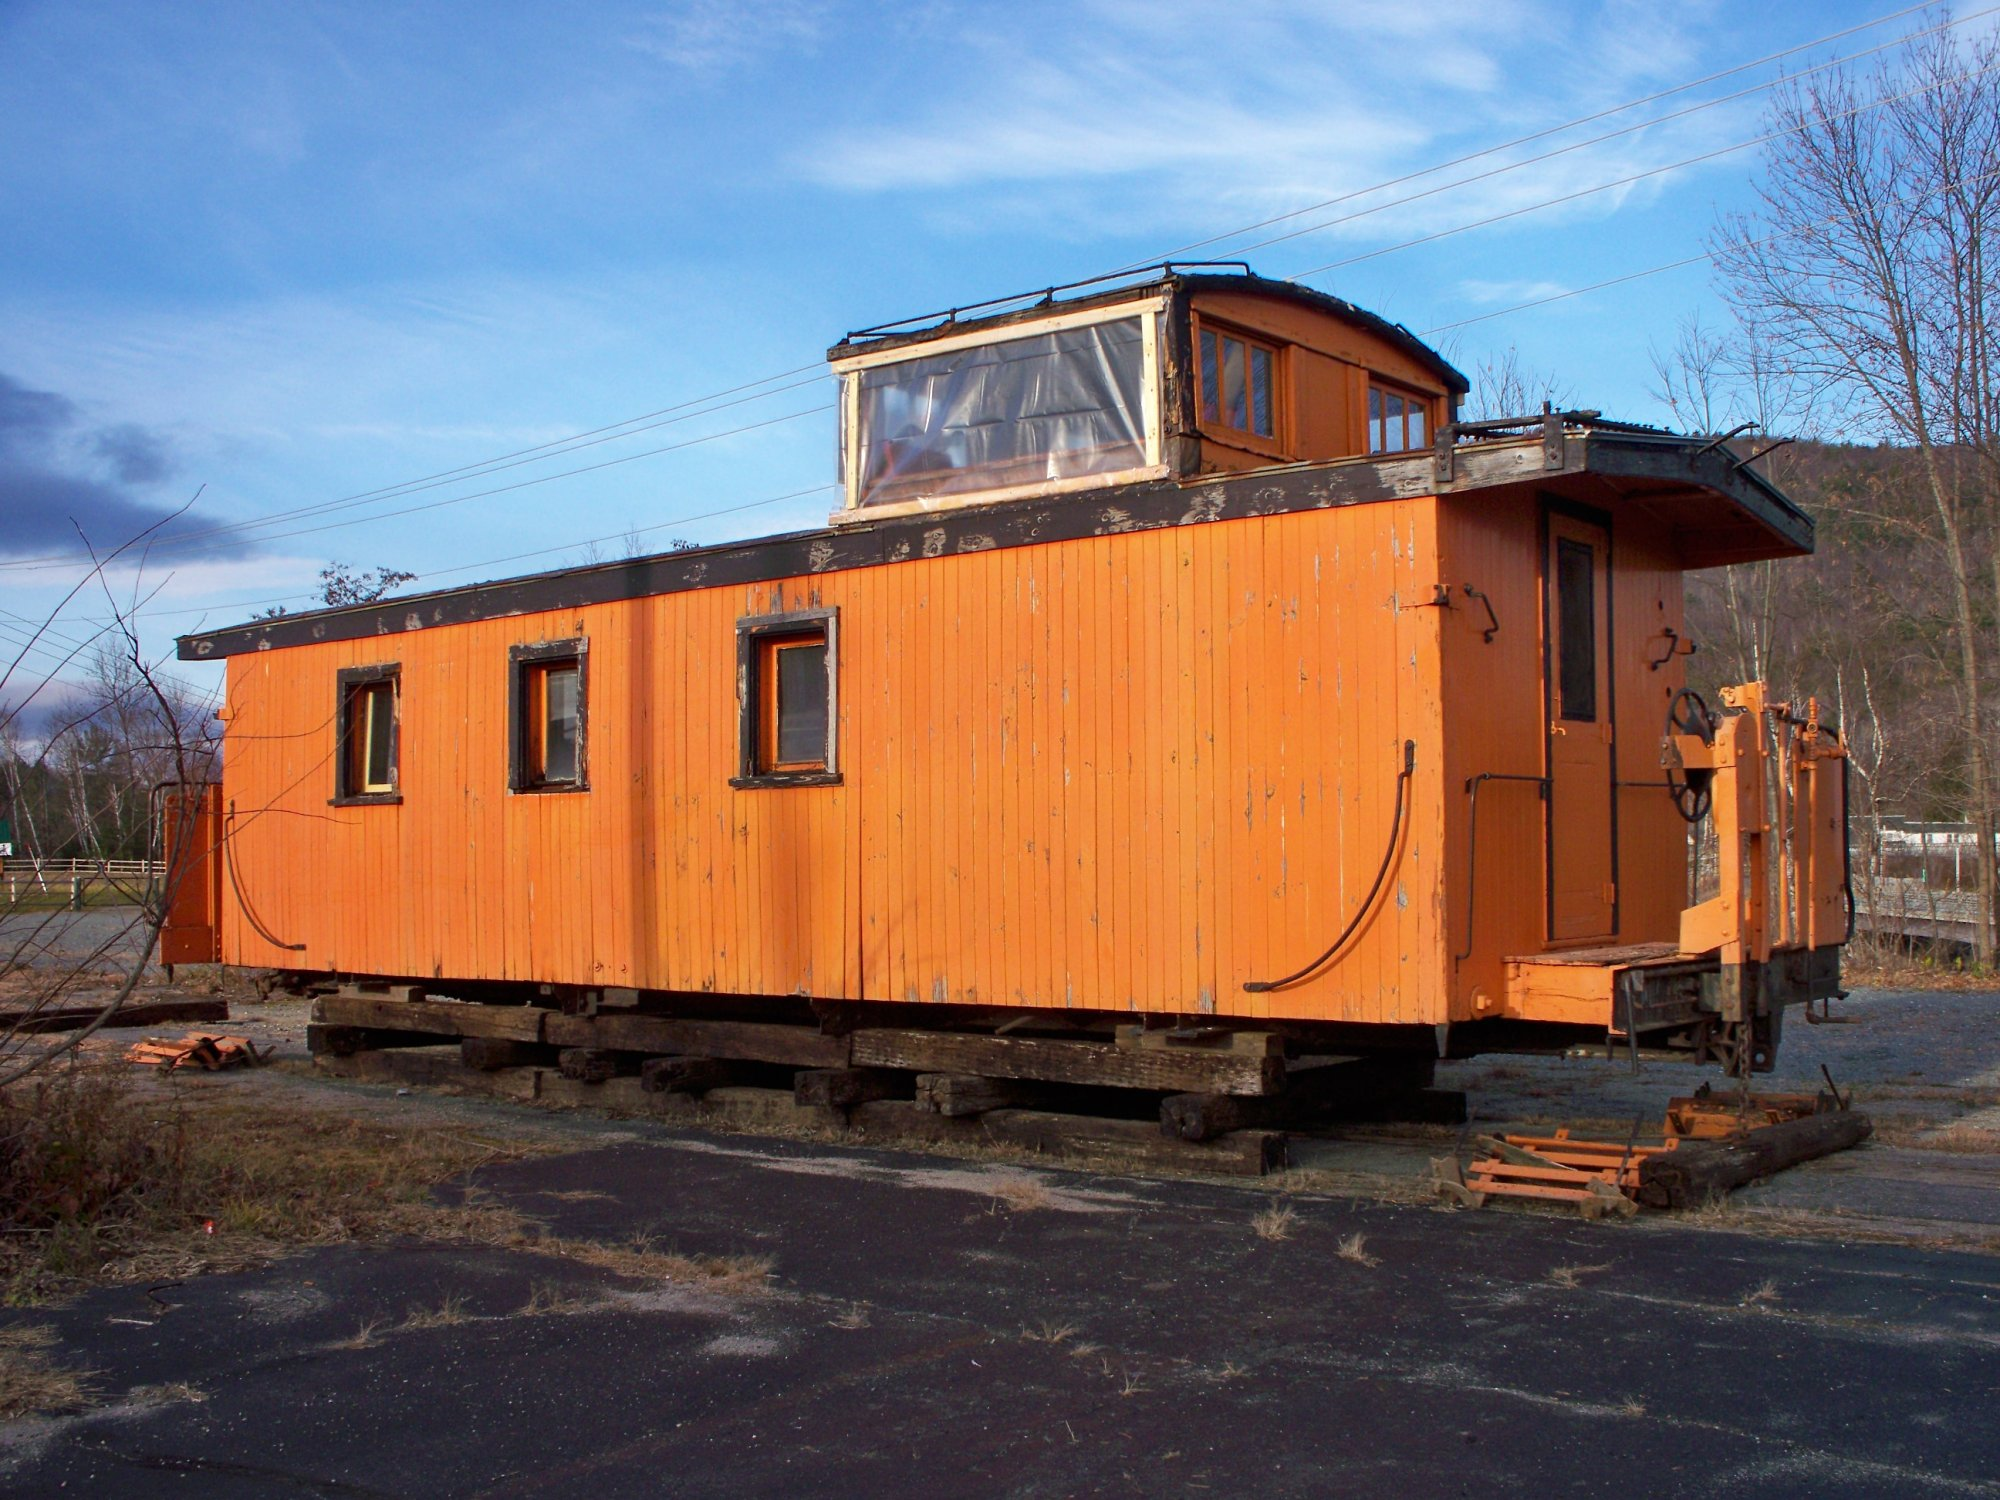 Old wooden caboose, less trucks, parked in Woodsville NH